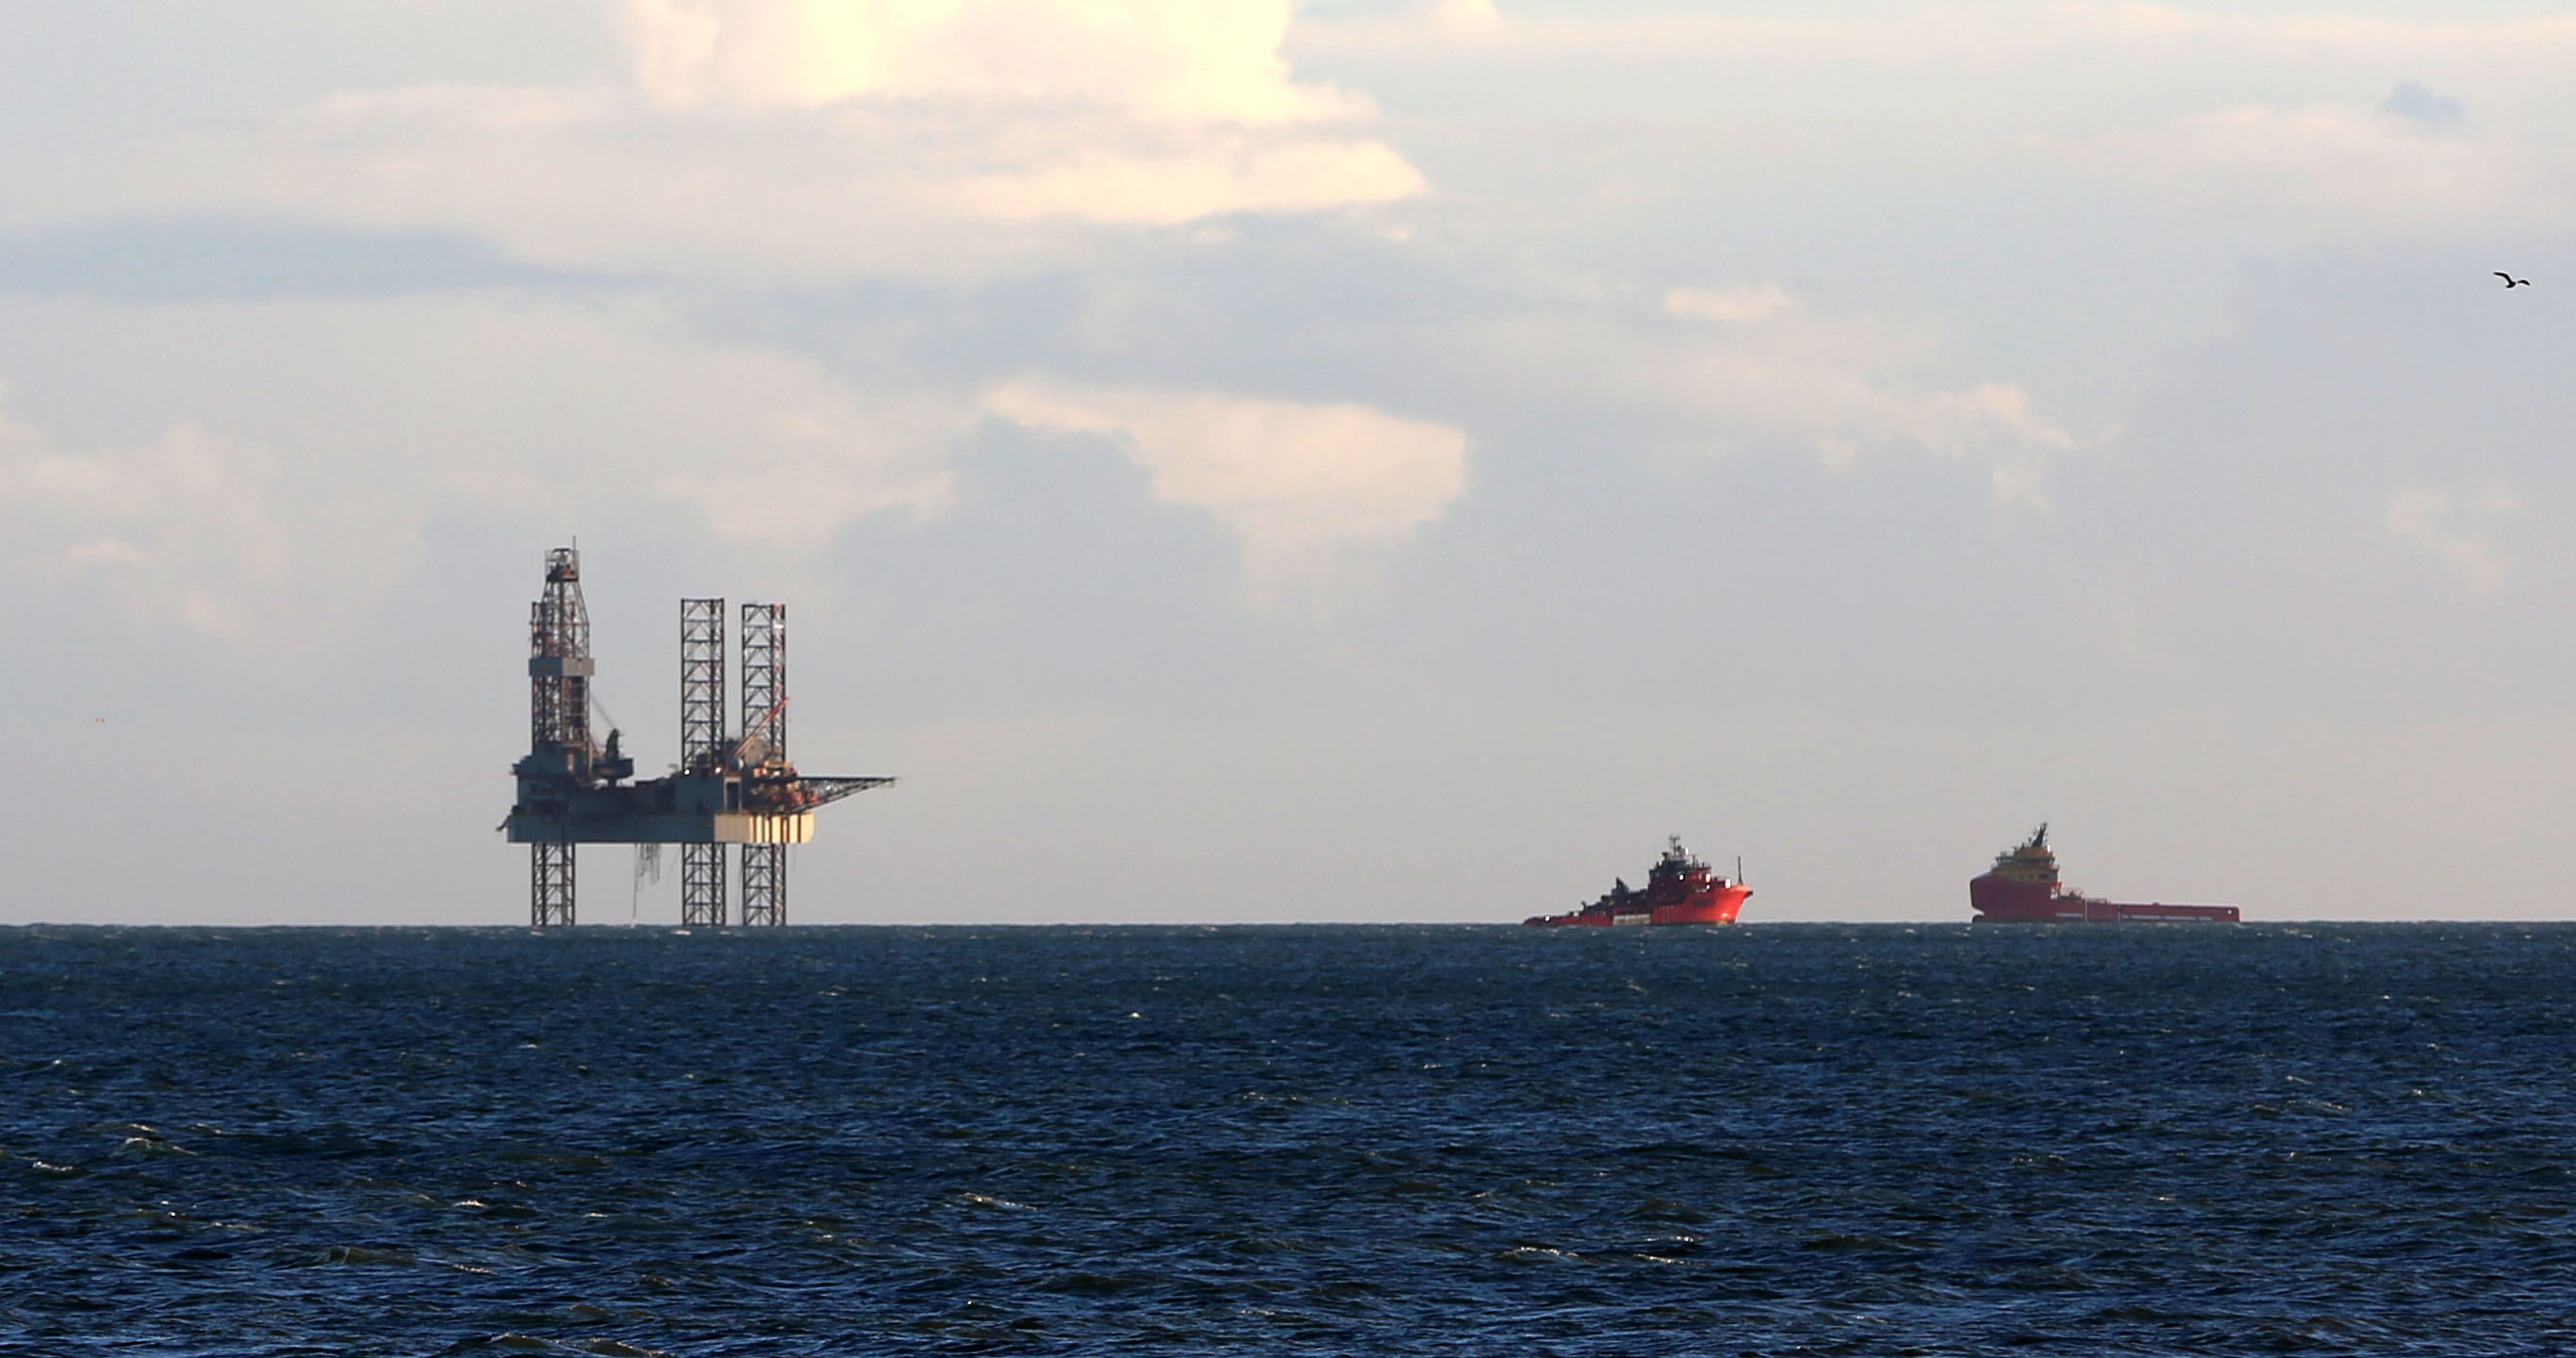 An oil rig, ENSCO 72, has arrived in Poole Bay, Bournemouth, Dorset